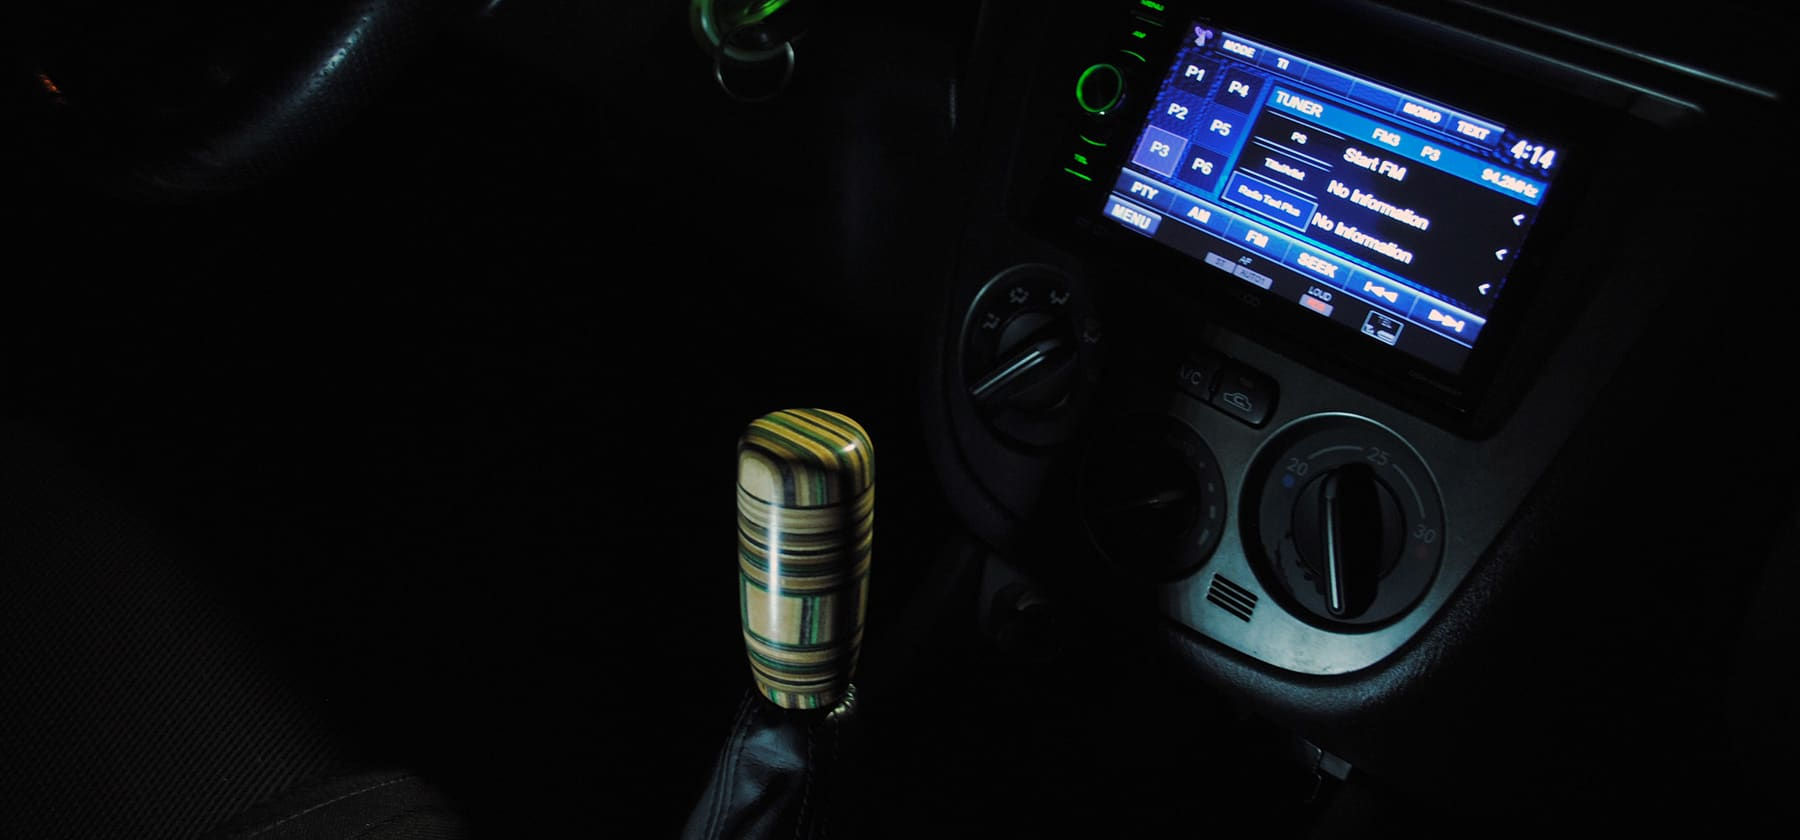 subaru green stick shift knob